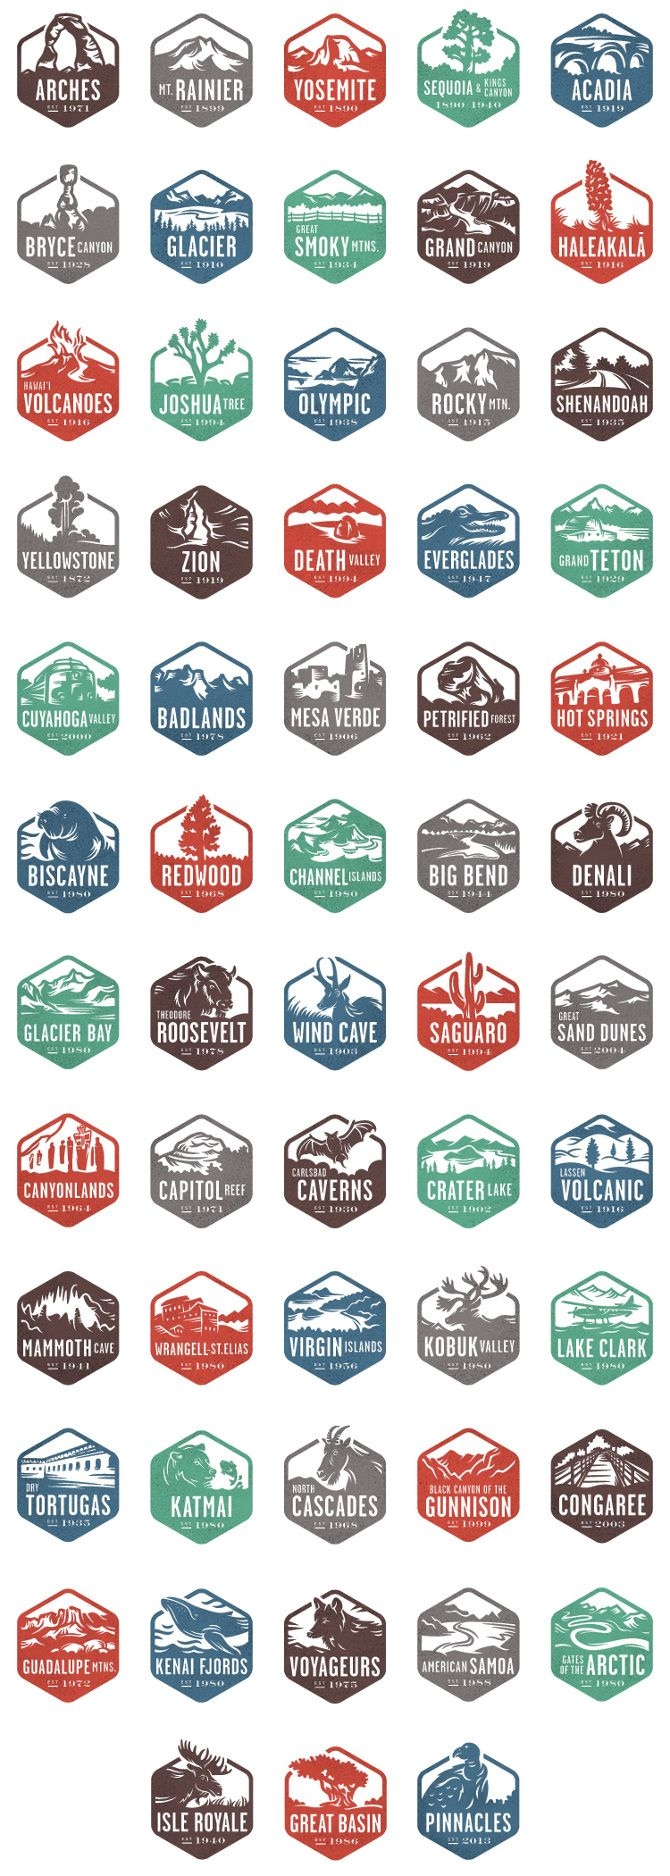 National Park Stamps - Valerie Jar / Design + Illustration